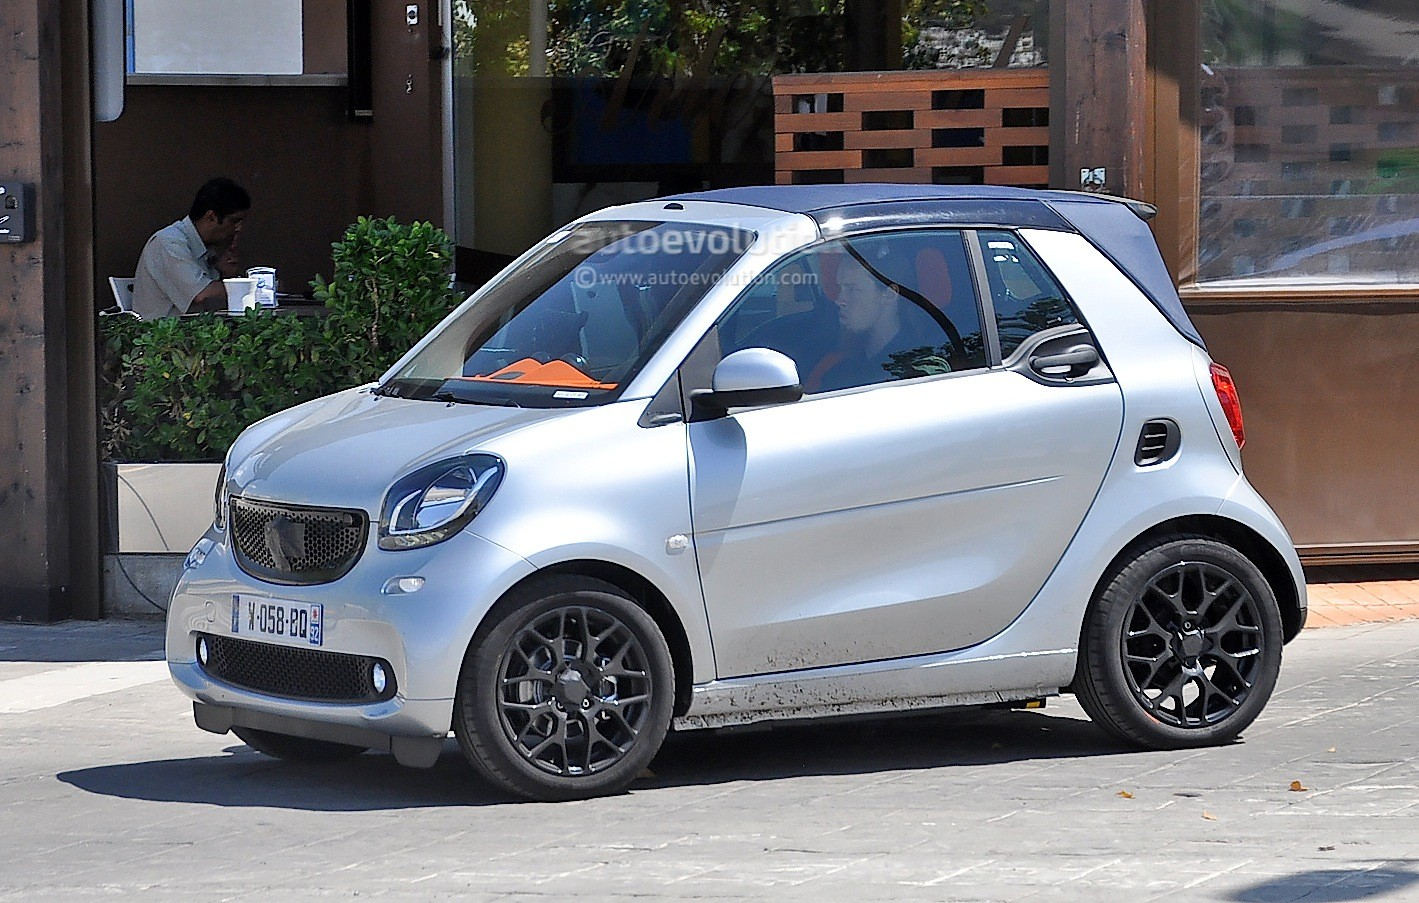 spyshots all new smart fortwo cabrio caught completely. Black Bedroom Furniture Sets. Home Design Ideas